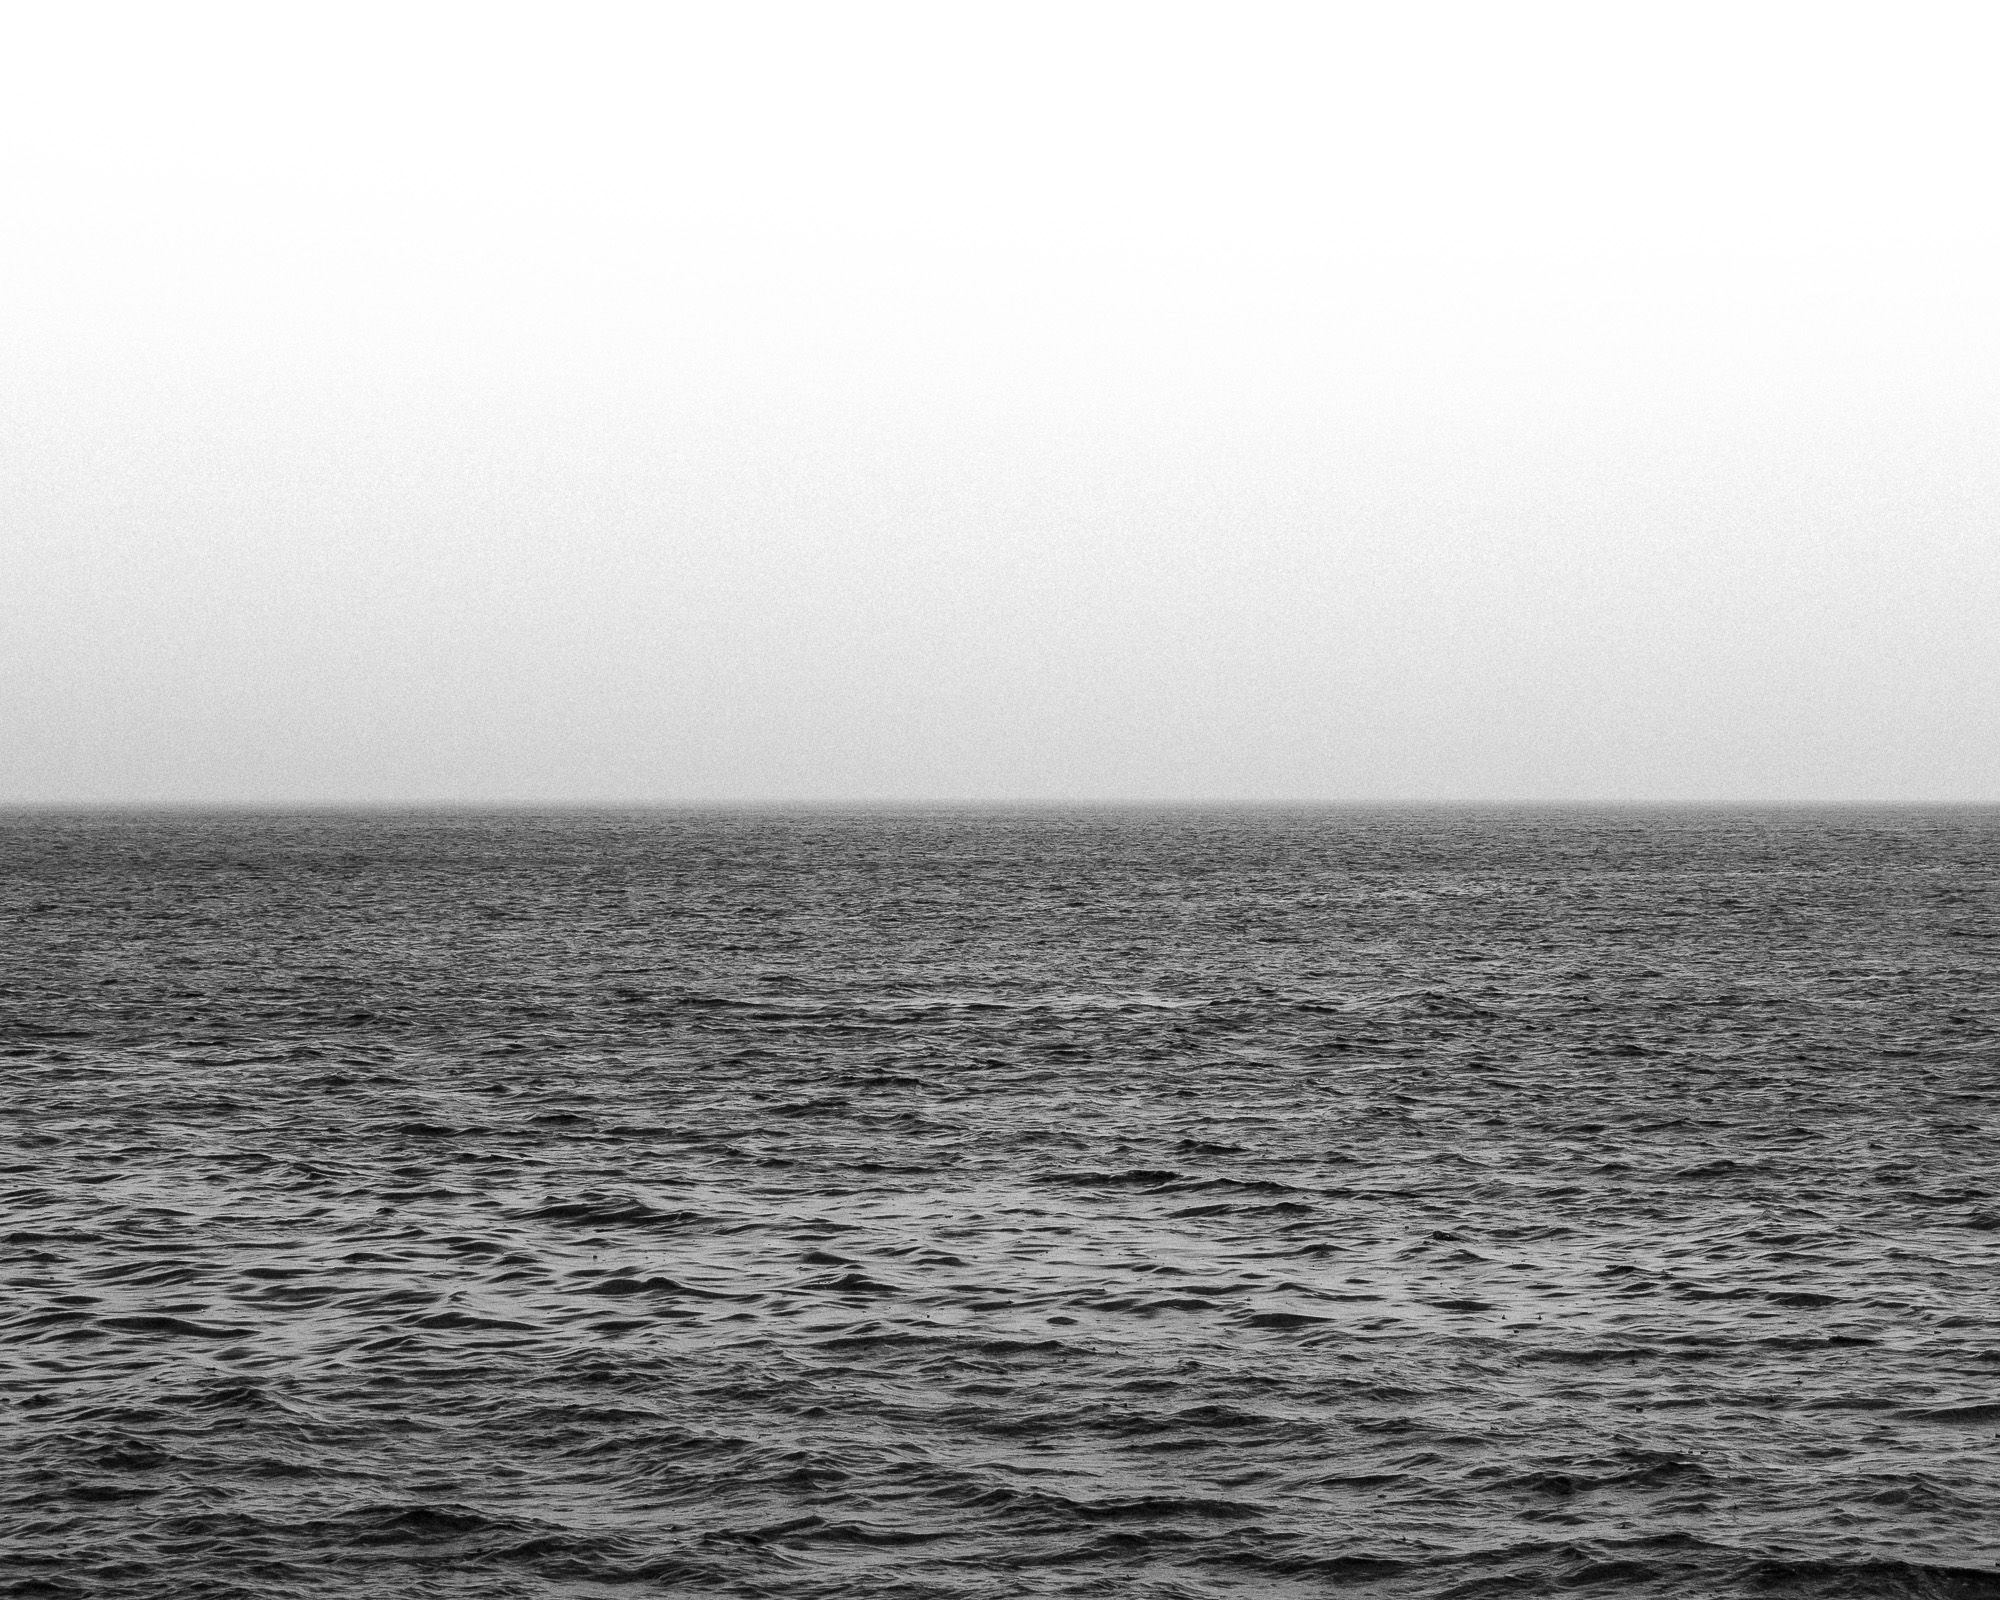 Seascape, Maledives 2014